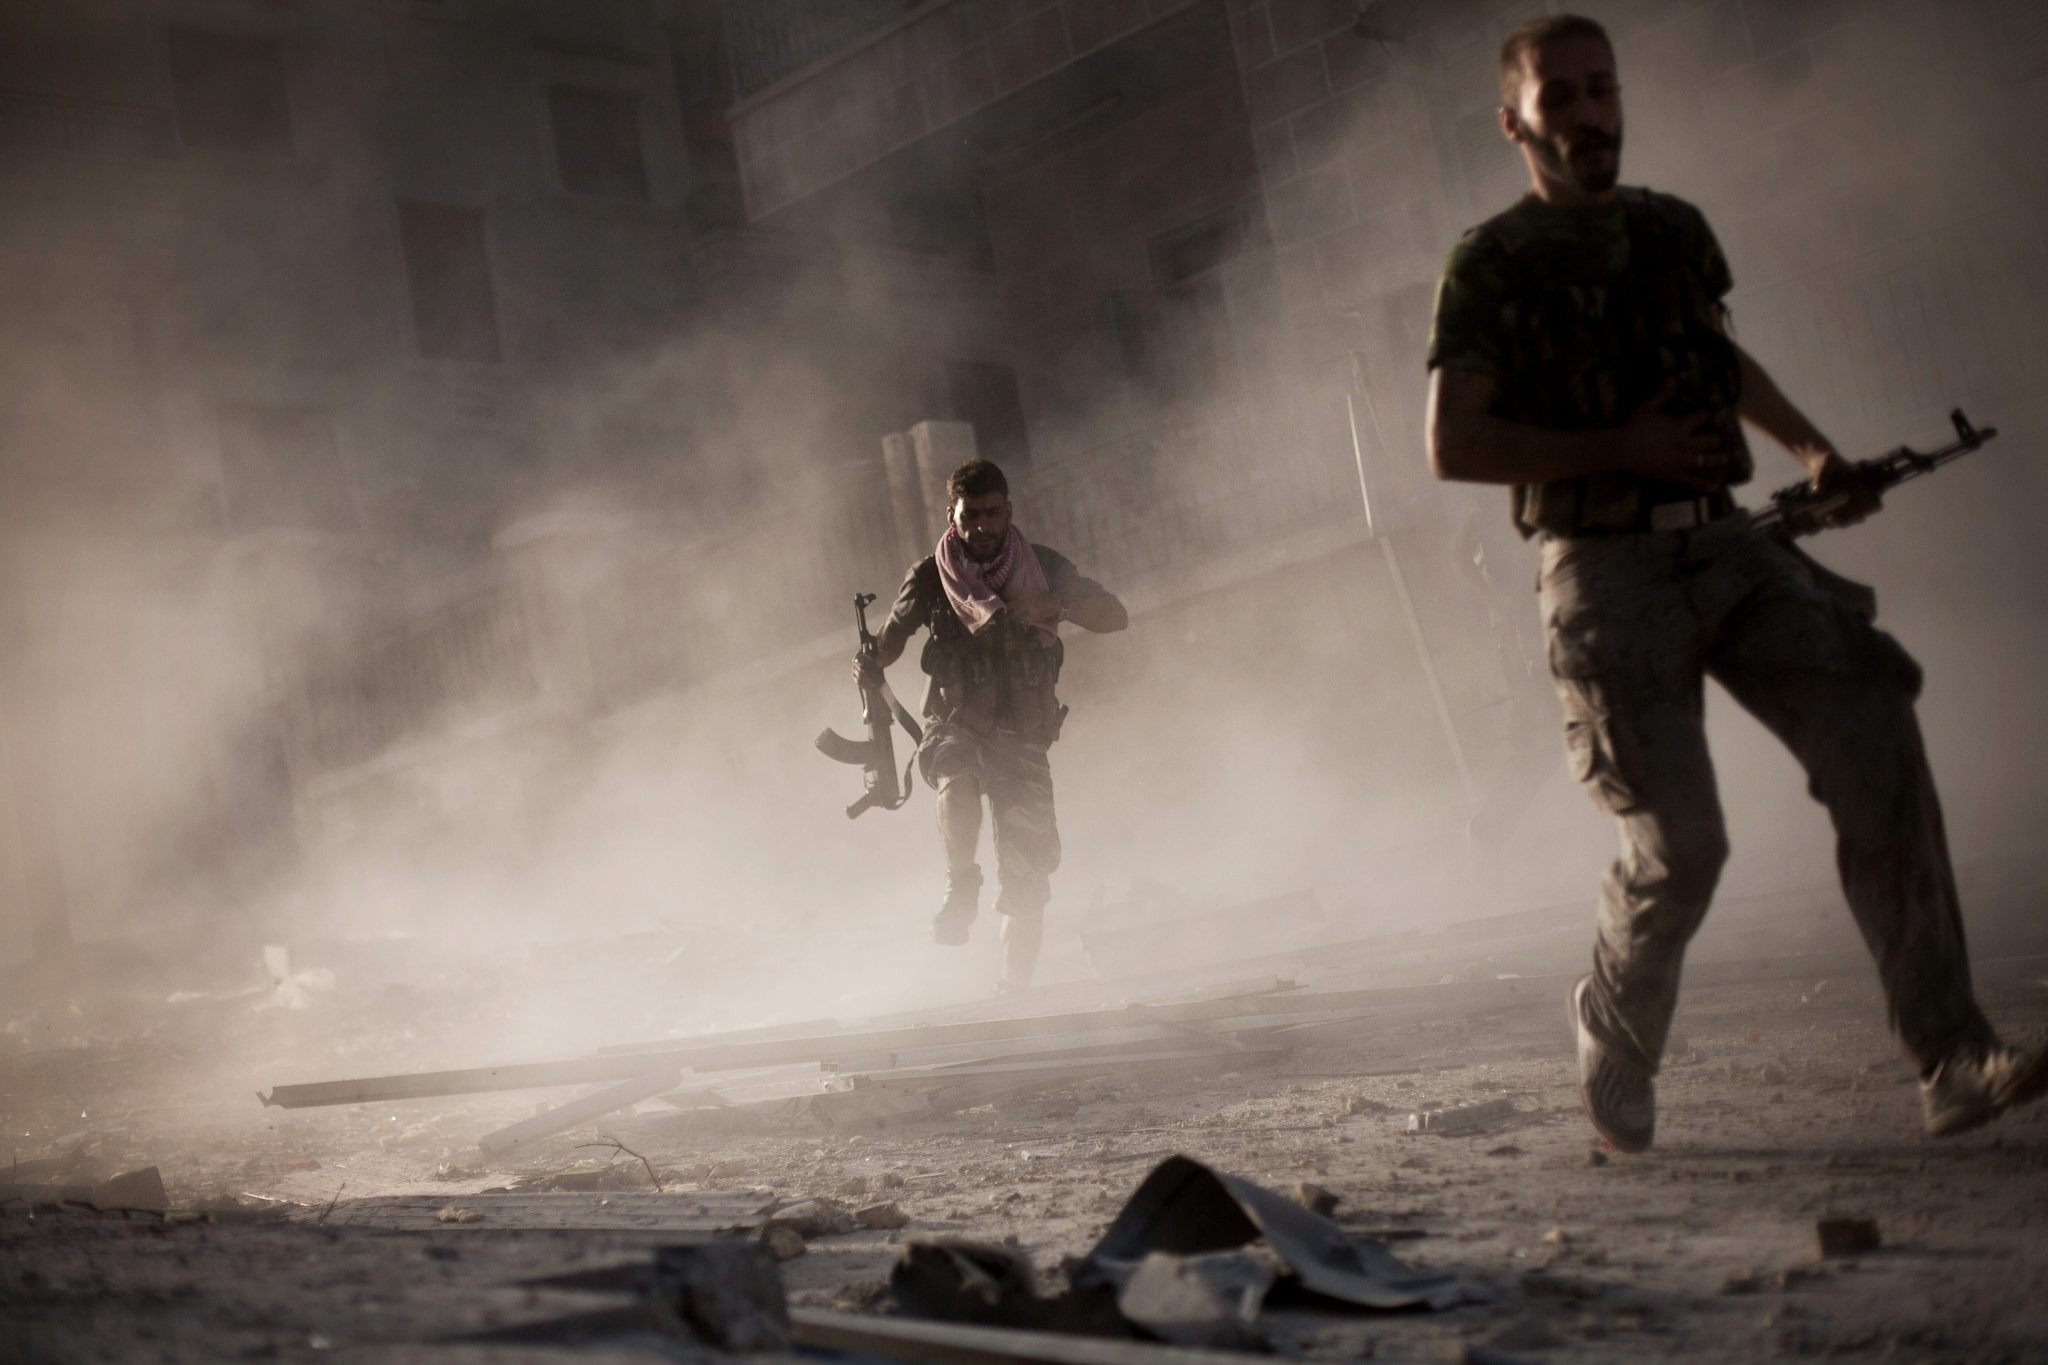 Two rebel Free Syrian Army soldiers run after attacking a Syrian Army tank during fighting in the Izaa district in Aleppo, Syria. (AP Photo)